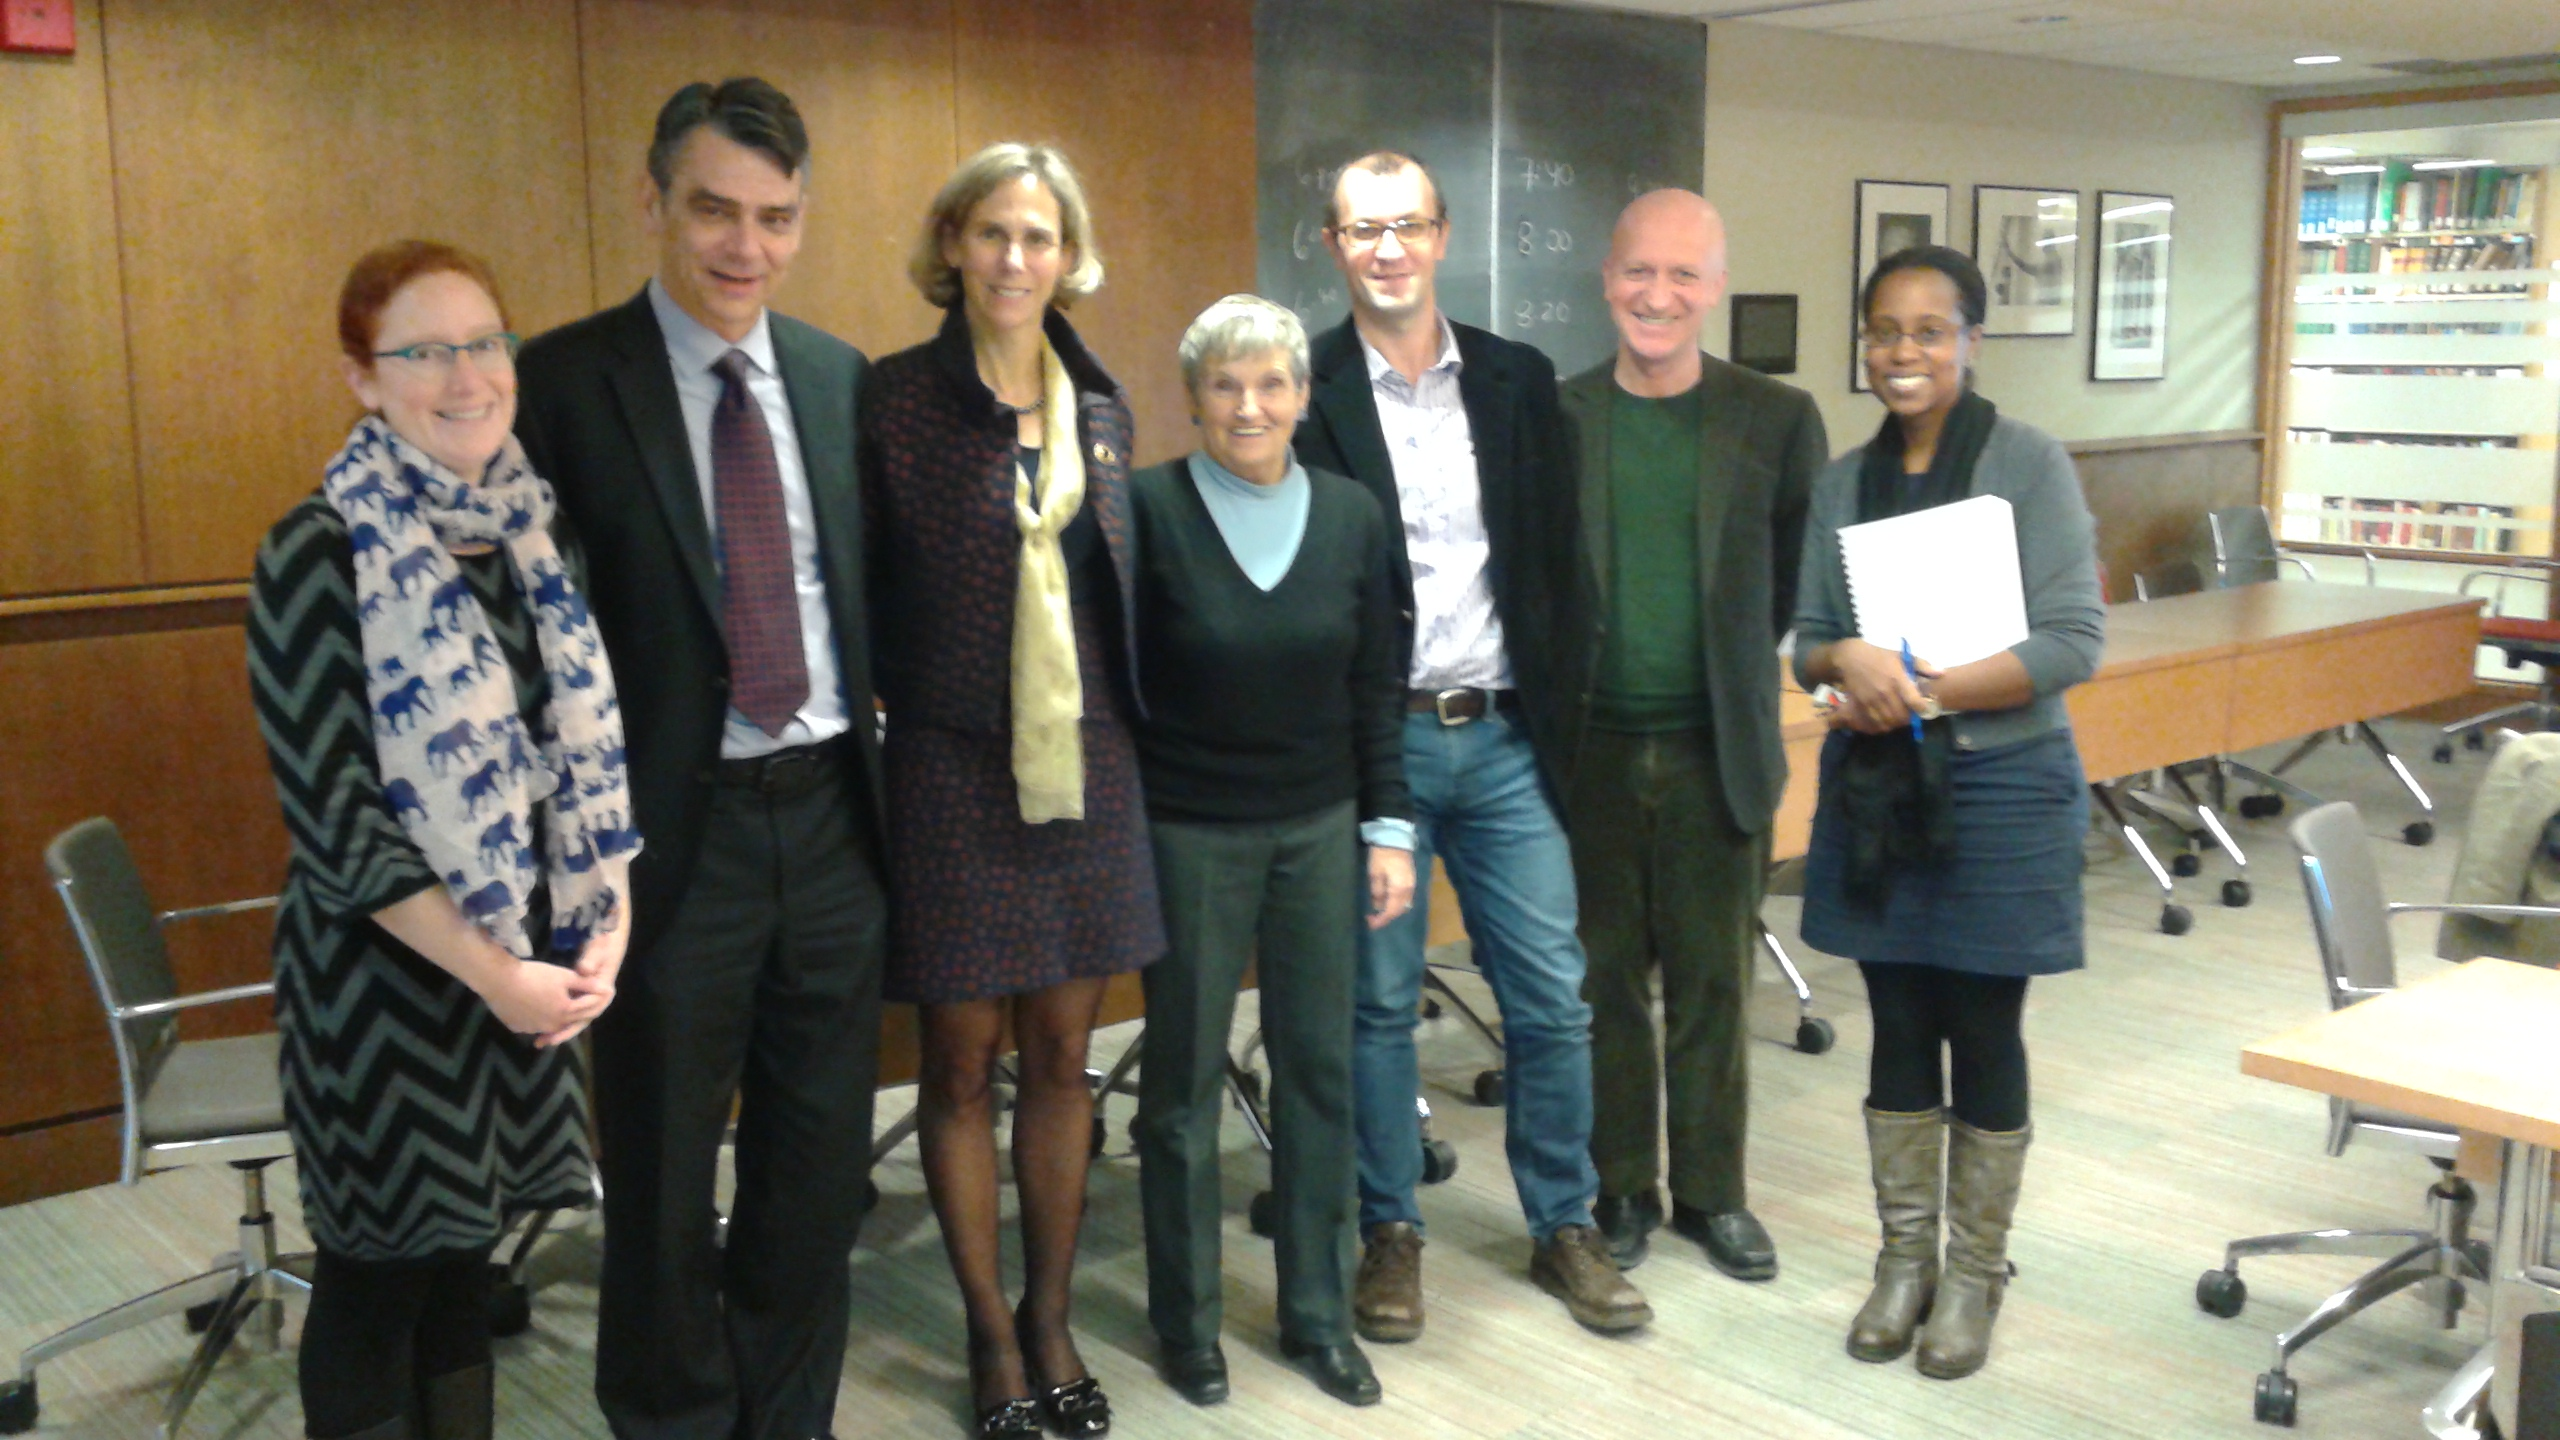 Professor Jennifer Quaid and the members of the jury of the thesis defence.